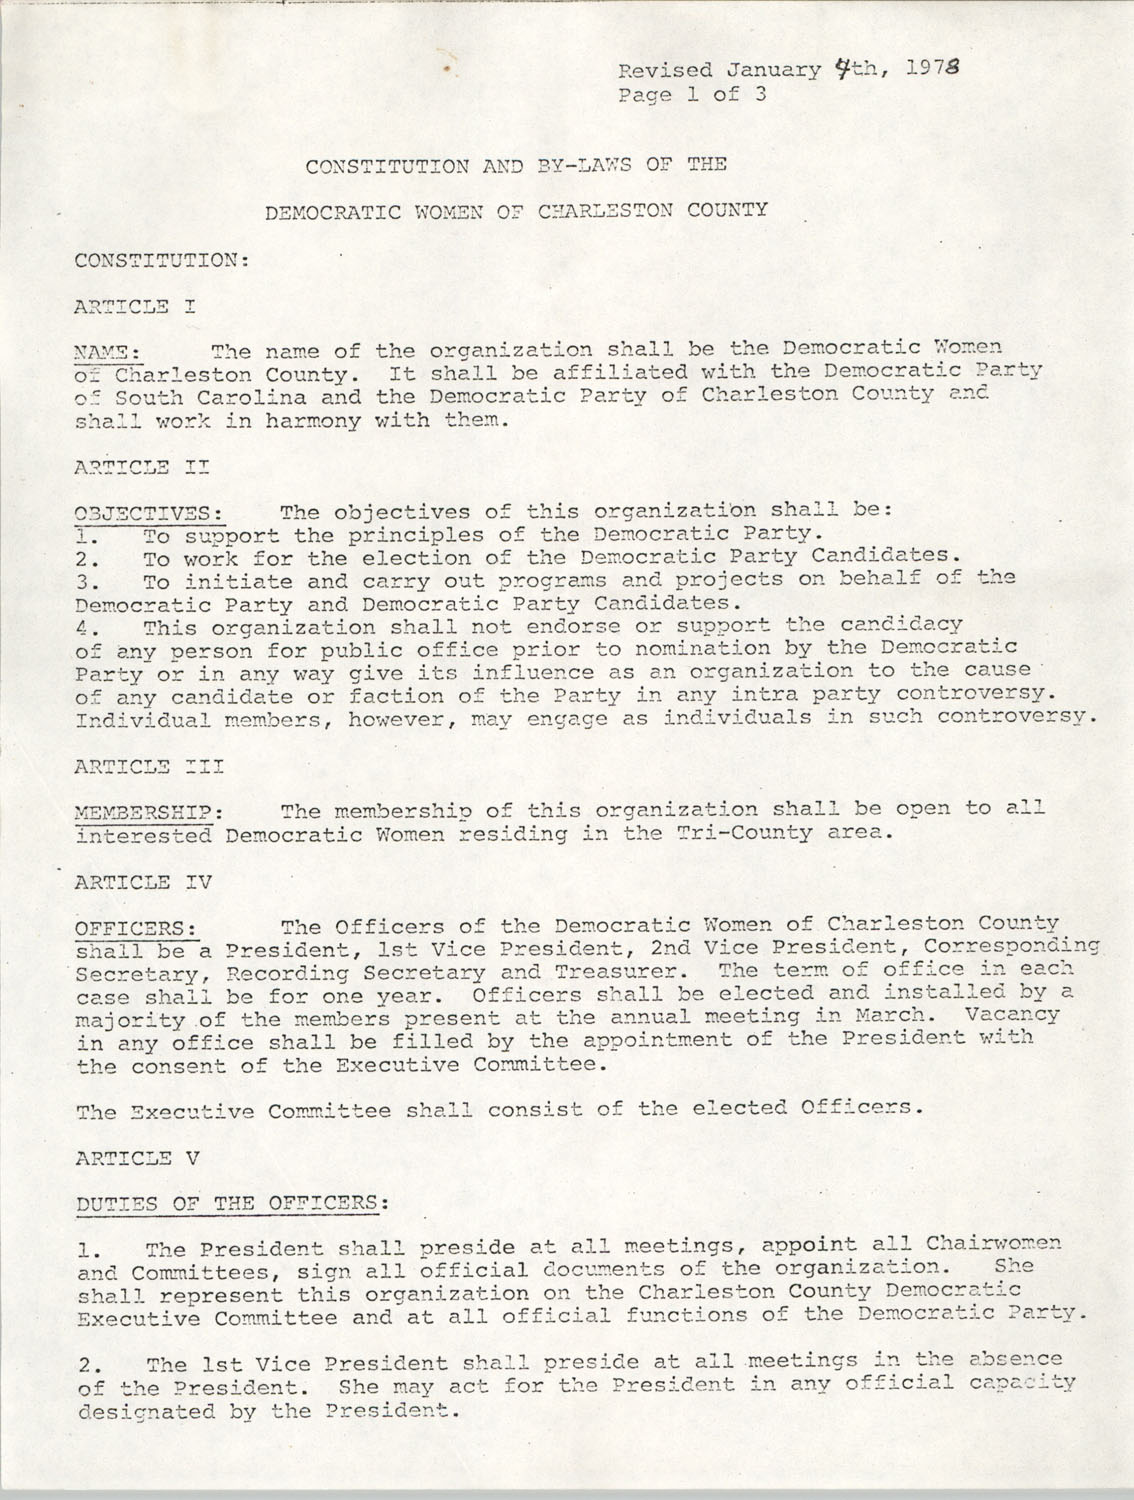 Constitution and By-Laws of the Democratic Women of Charleston County, January 4, 1978